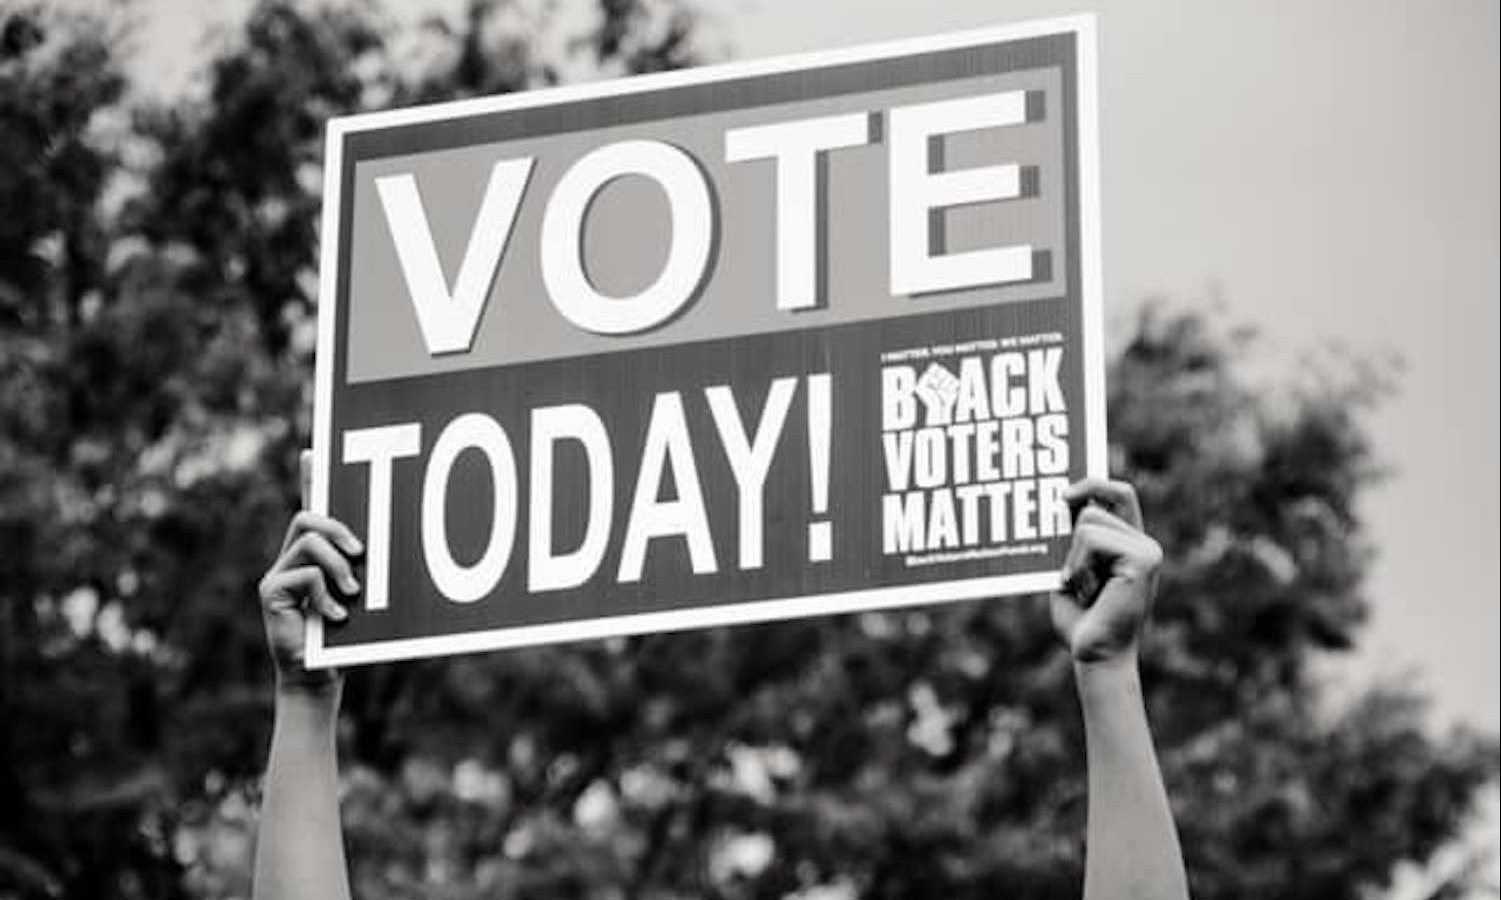 Voting rights activist calls for federal Department of Democracy | Civil  Rights Today